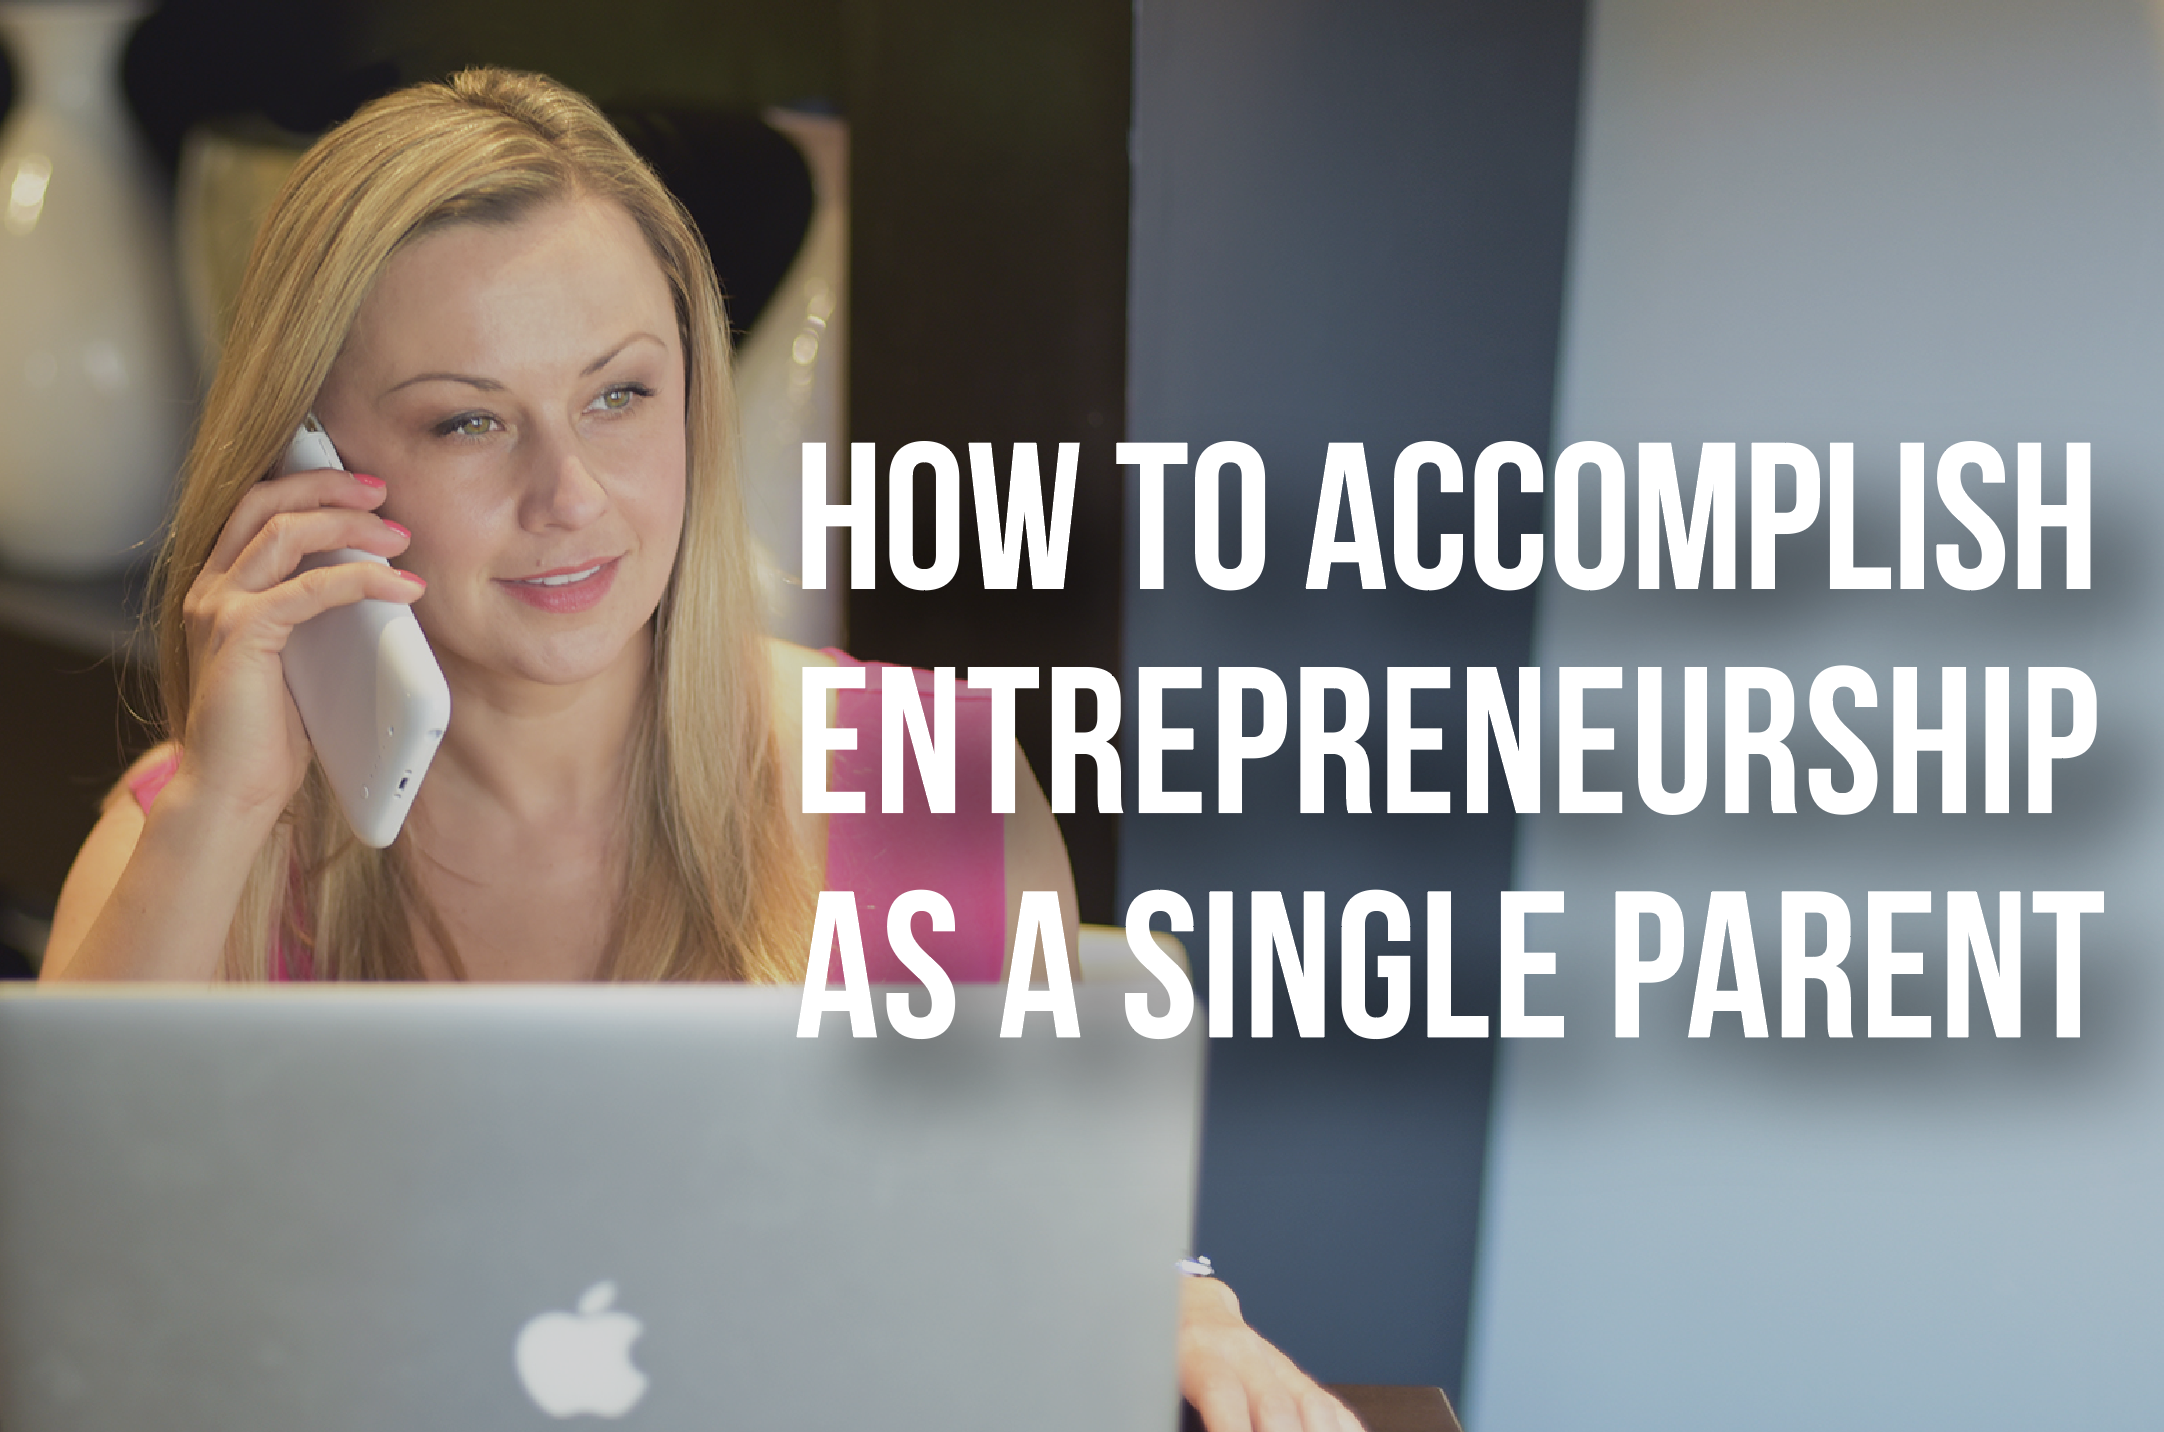 HOW TO ACCOMPLISH ENTREPRENEURSHIP AS A SINGLE PARENT